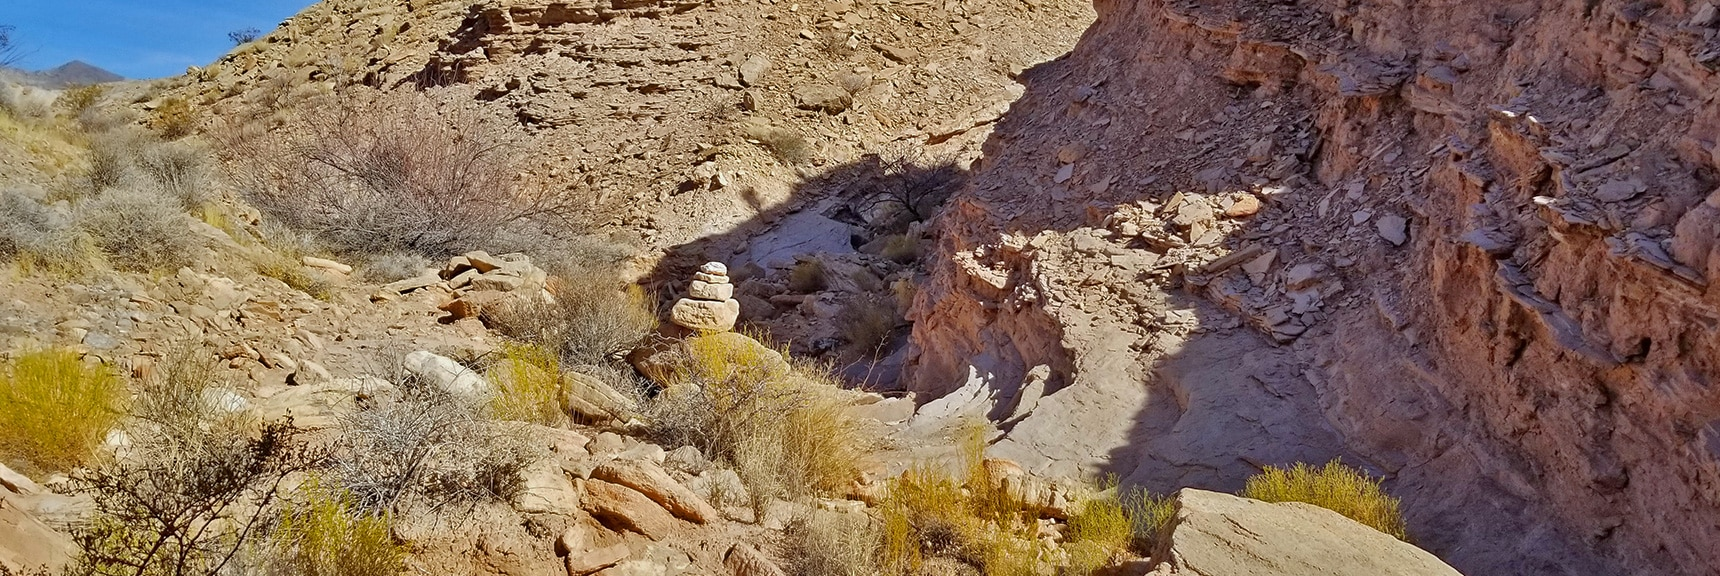 Navigating a Series of Narrow Washes to the Right Guided by Cairns   Anniversary Narrows   Muddy Mountains Wilderness, Nevada